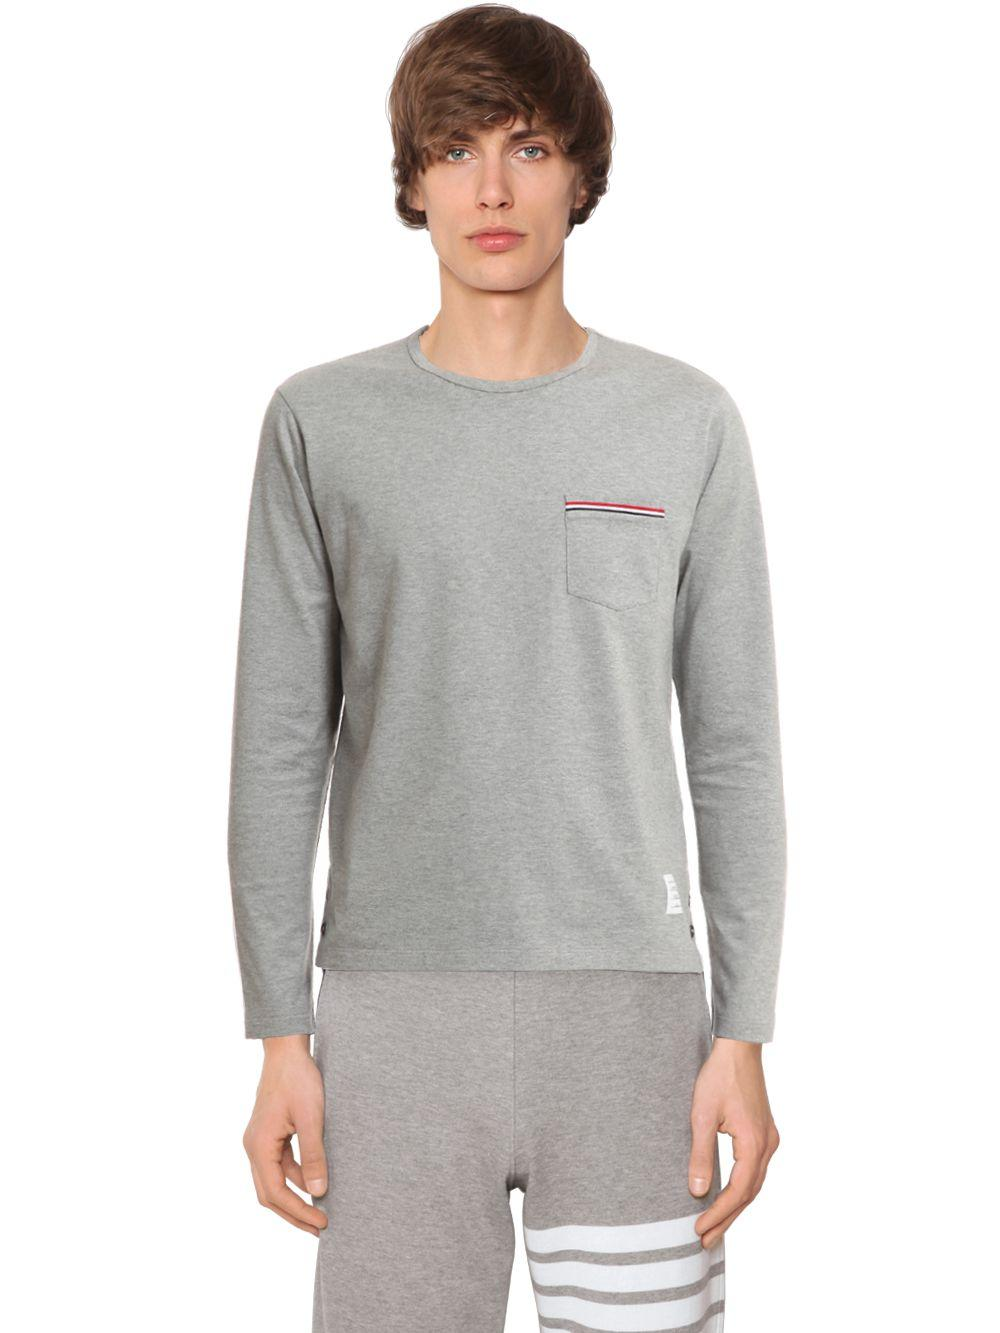 Thom browne cotton jersey long sleeve t shirt in gray for for Thom browne t shirt